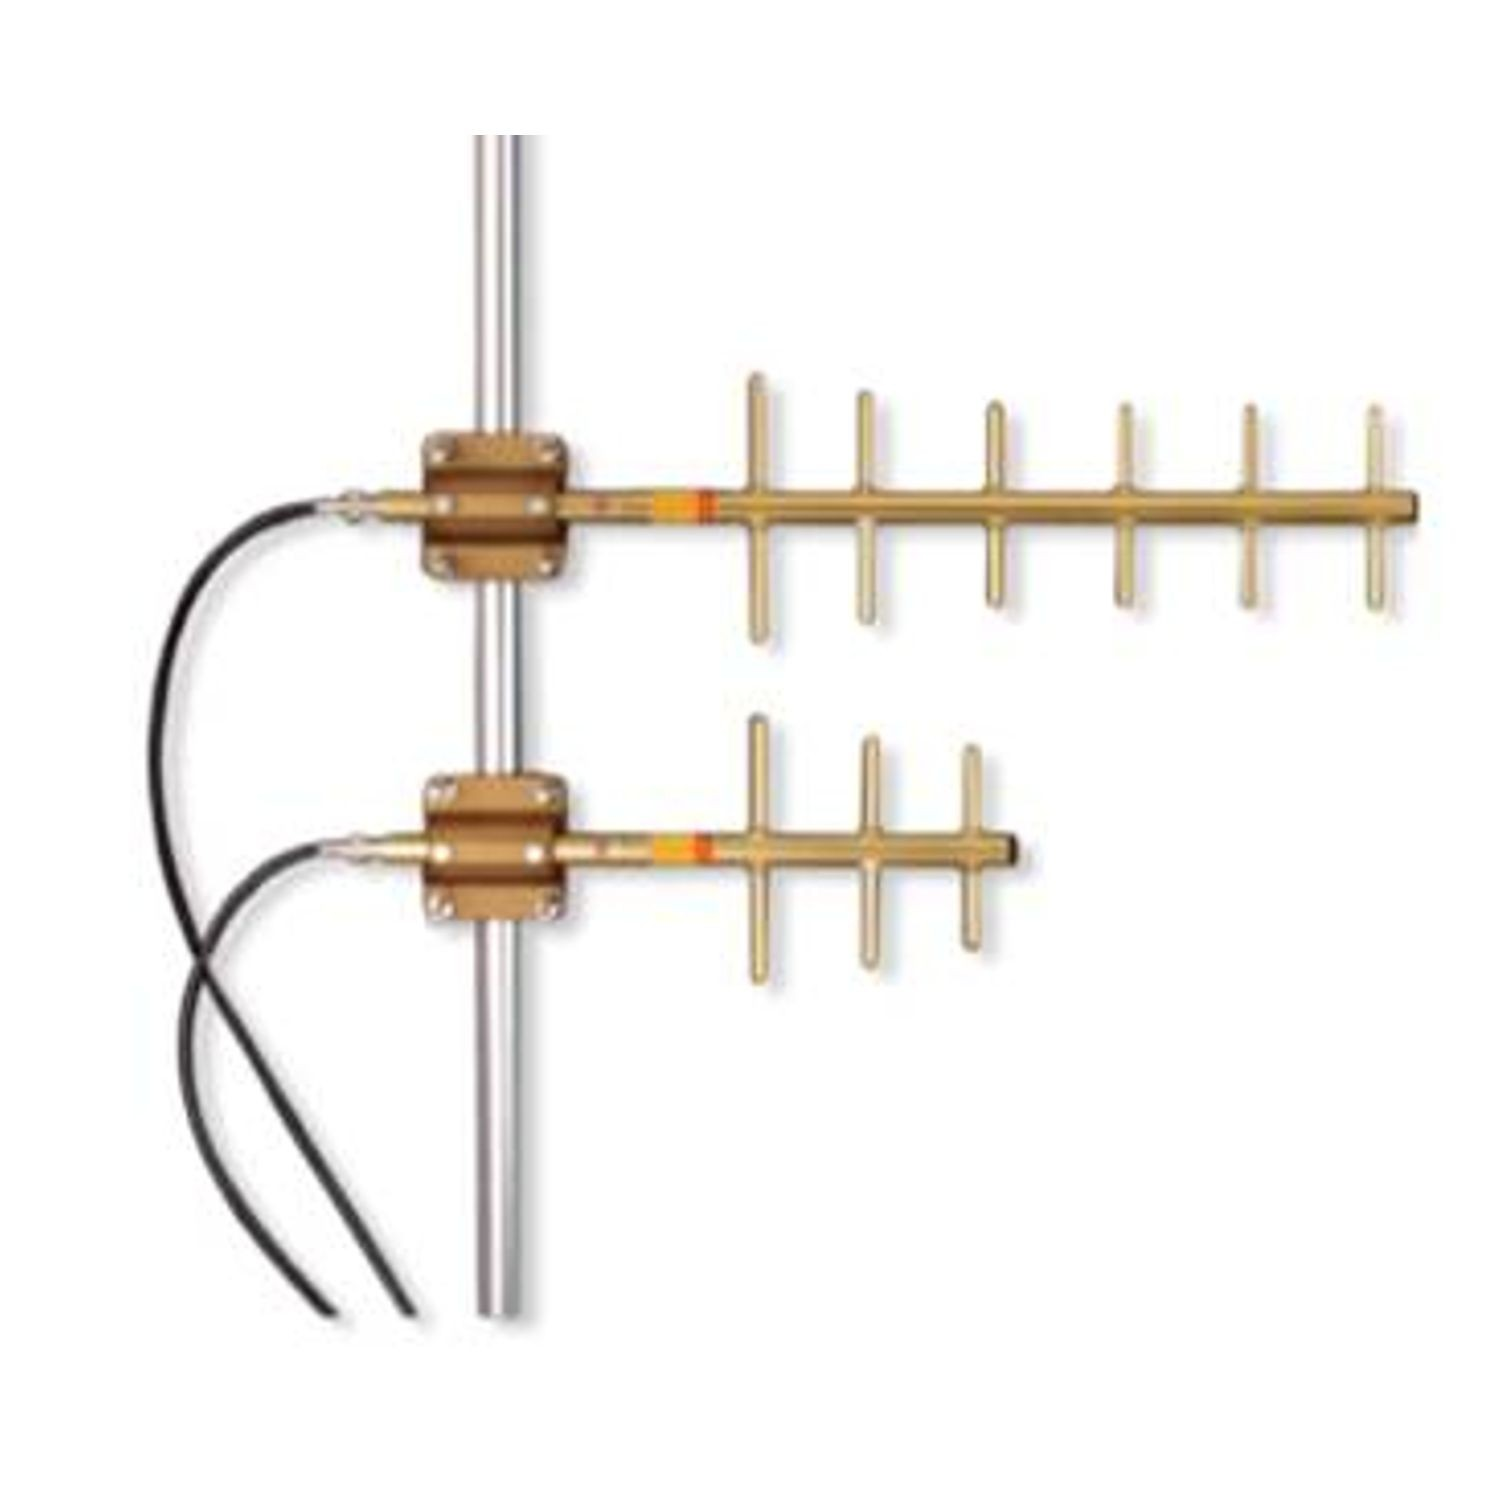 450-480 MHZ DIRECTIONAL YAGI ANTENNA, 6 ELEMENT, 10.2 DBD GAIN